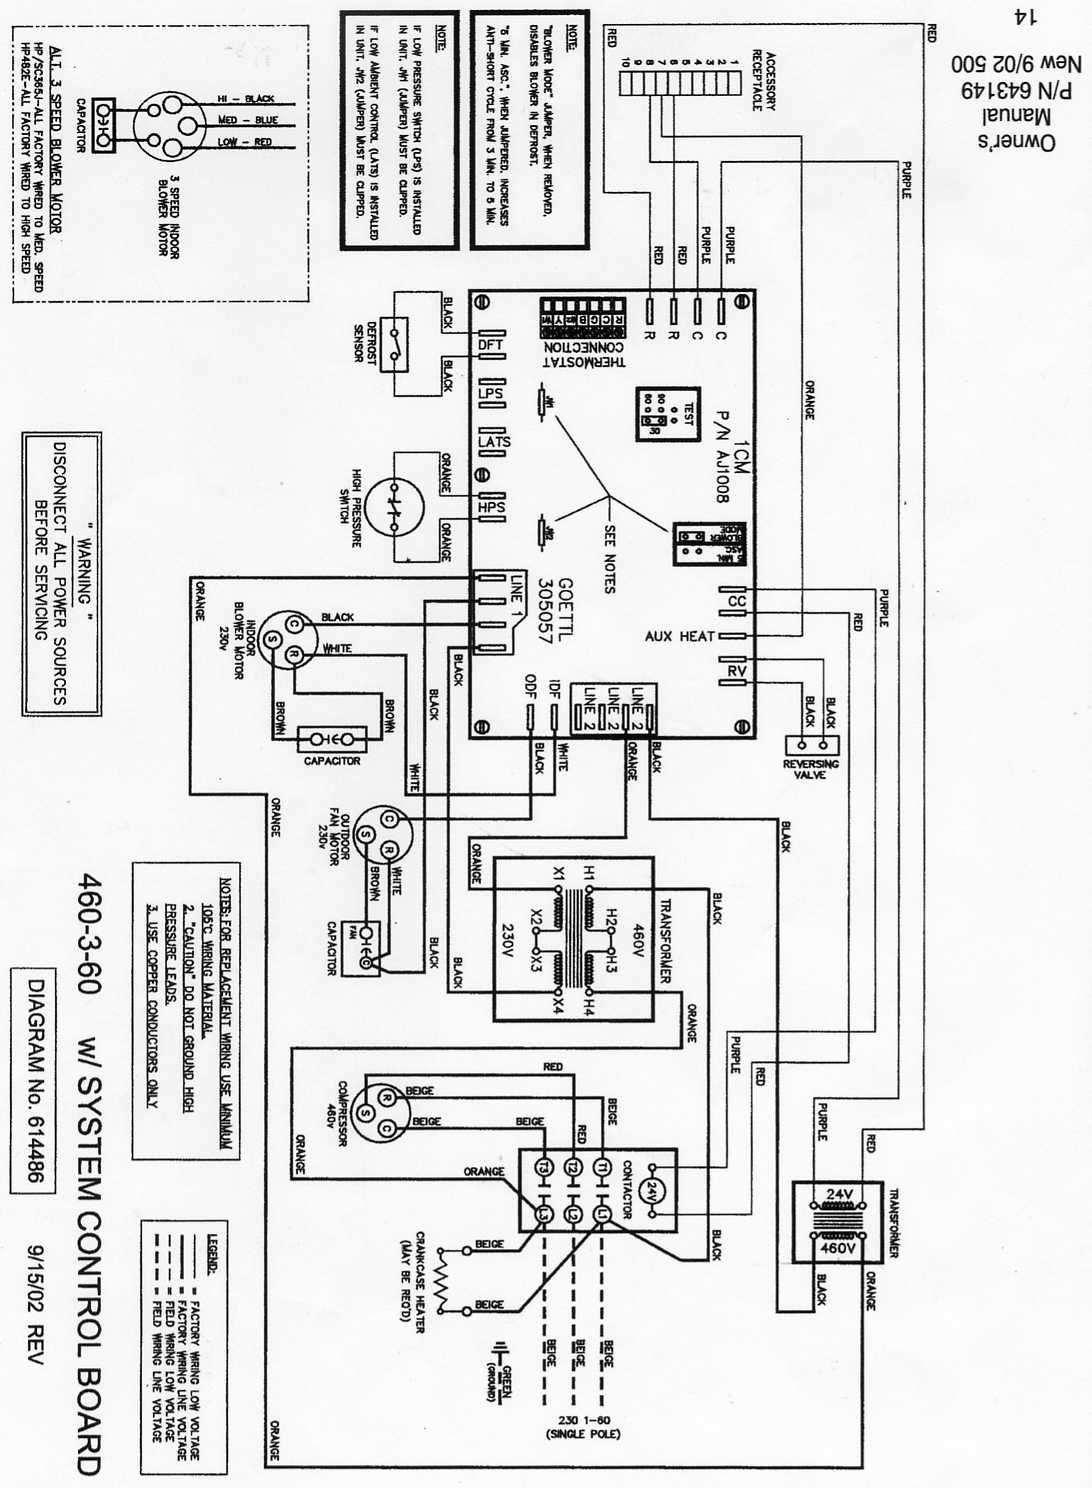 goettl heat pump  wiring and troubleshooting  i need a